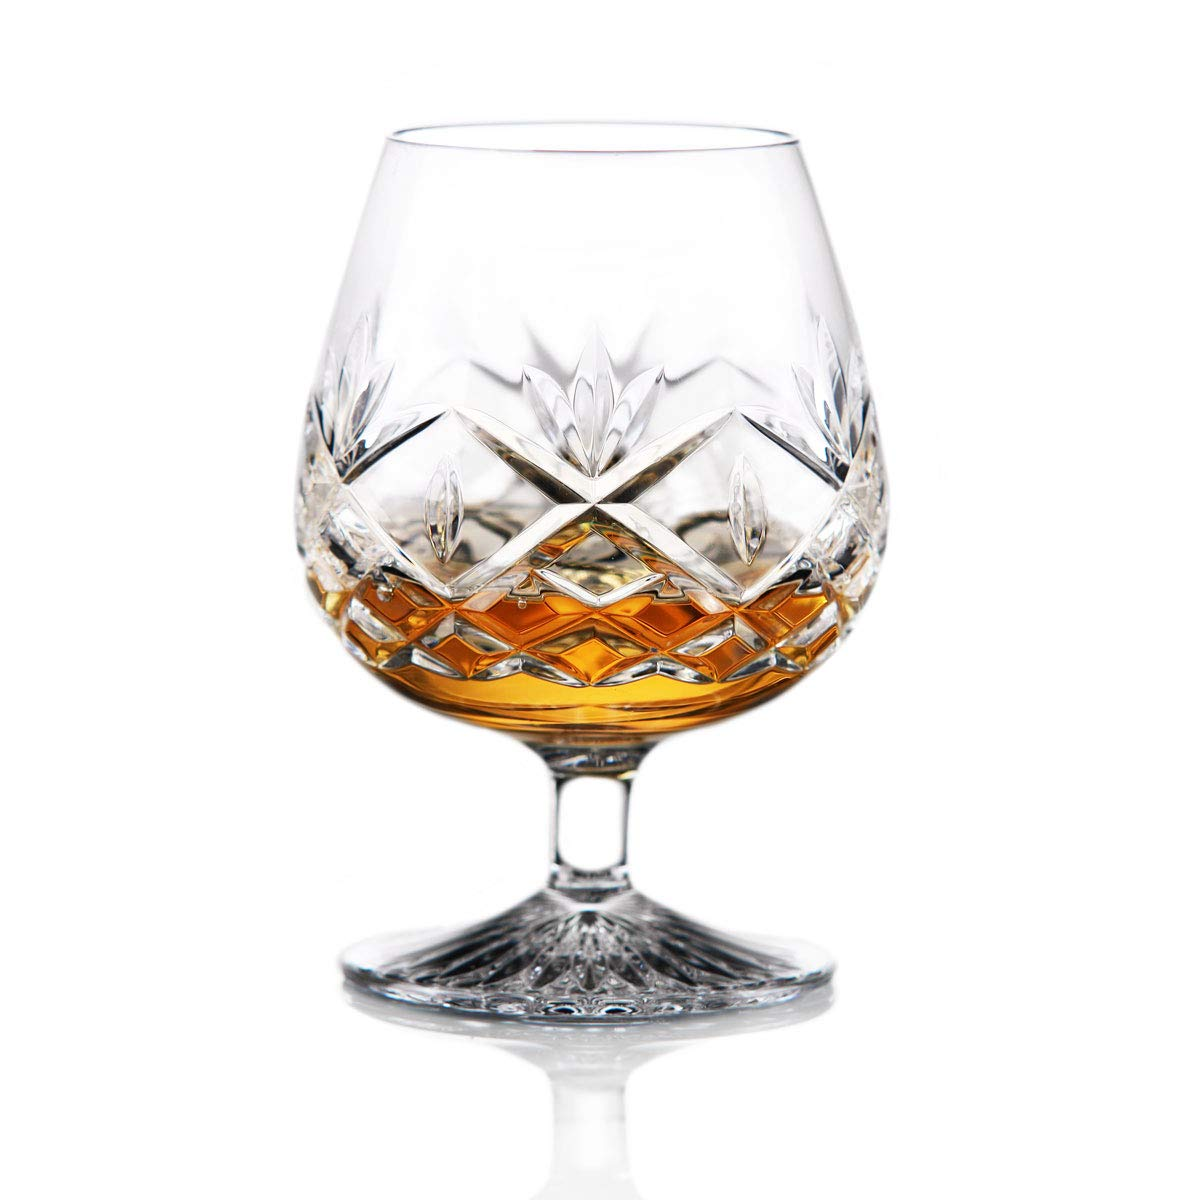 Waterford Crystal Huntley Brandy, Cognac Glass, Single by Waterford